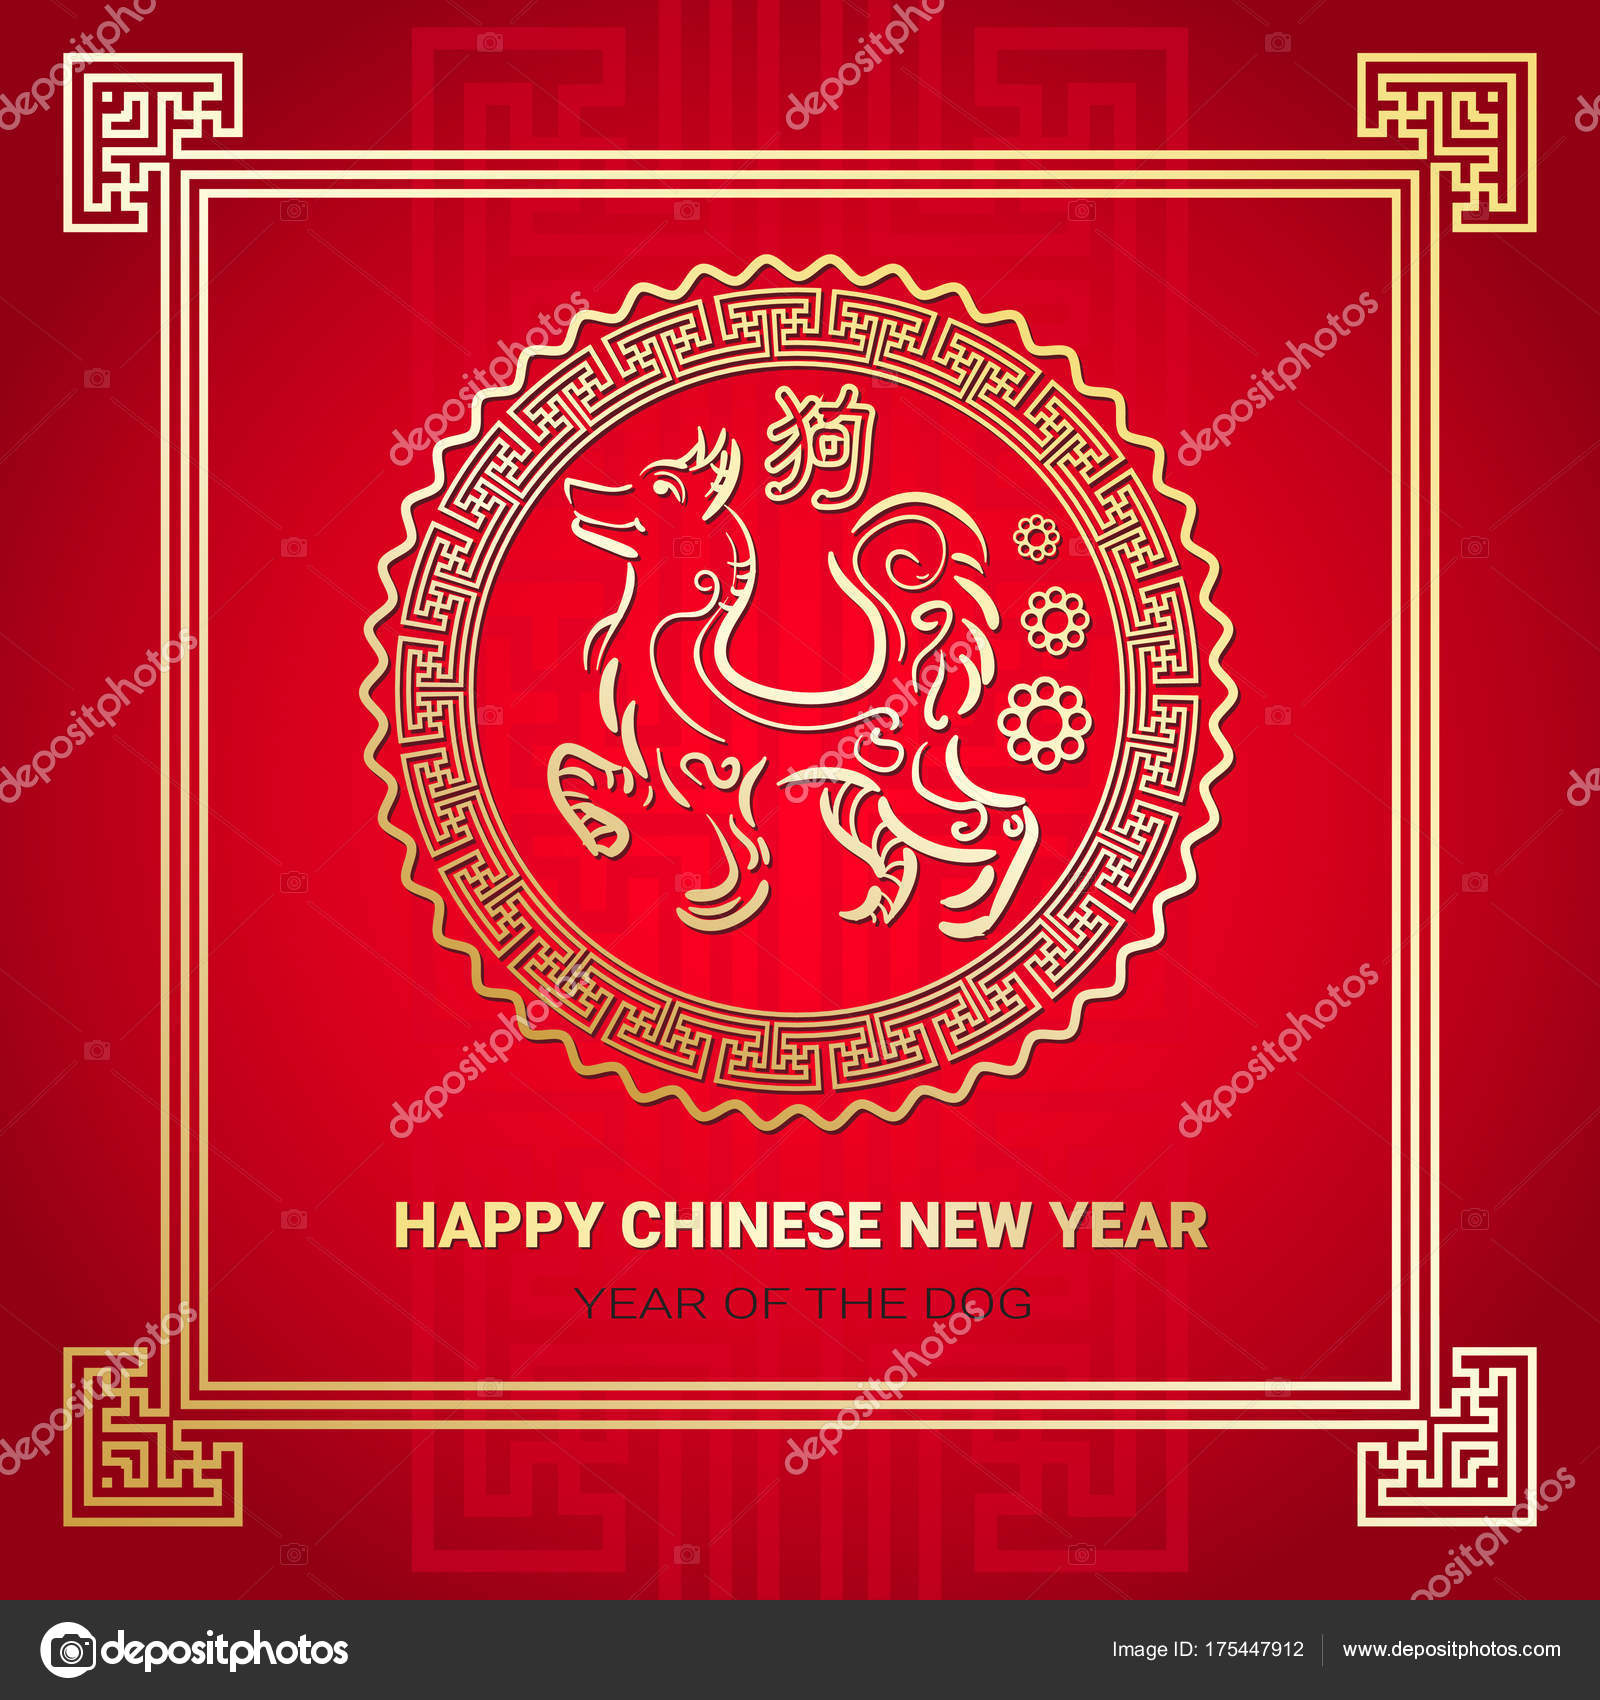 Happy Chinese New Year Greeting Card 2018 Lunar Dog Symbol Red And